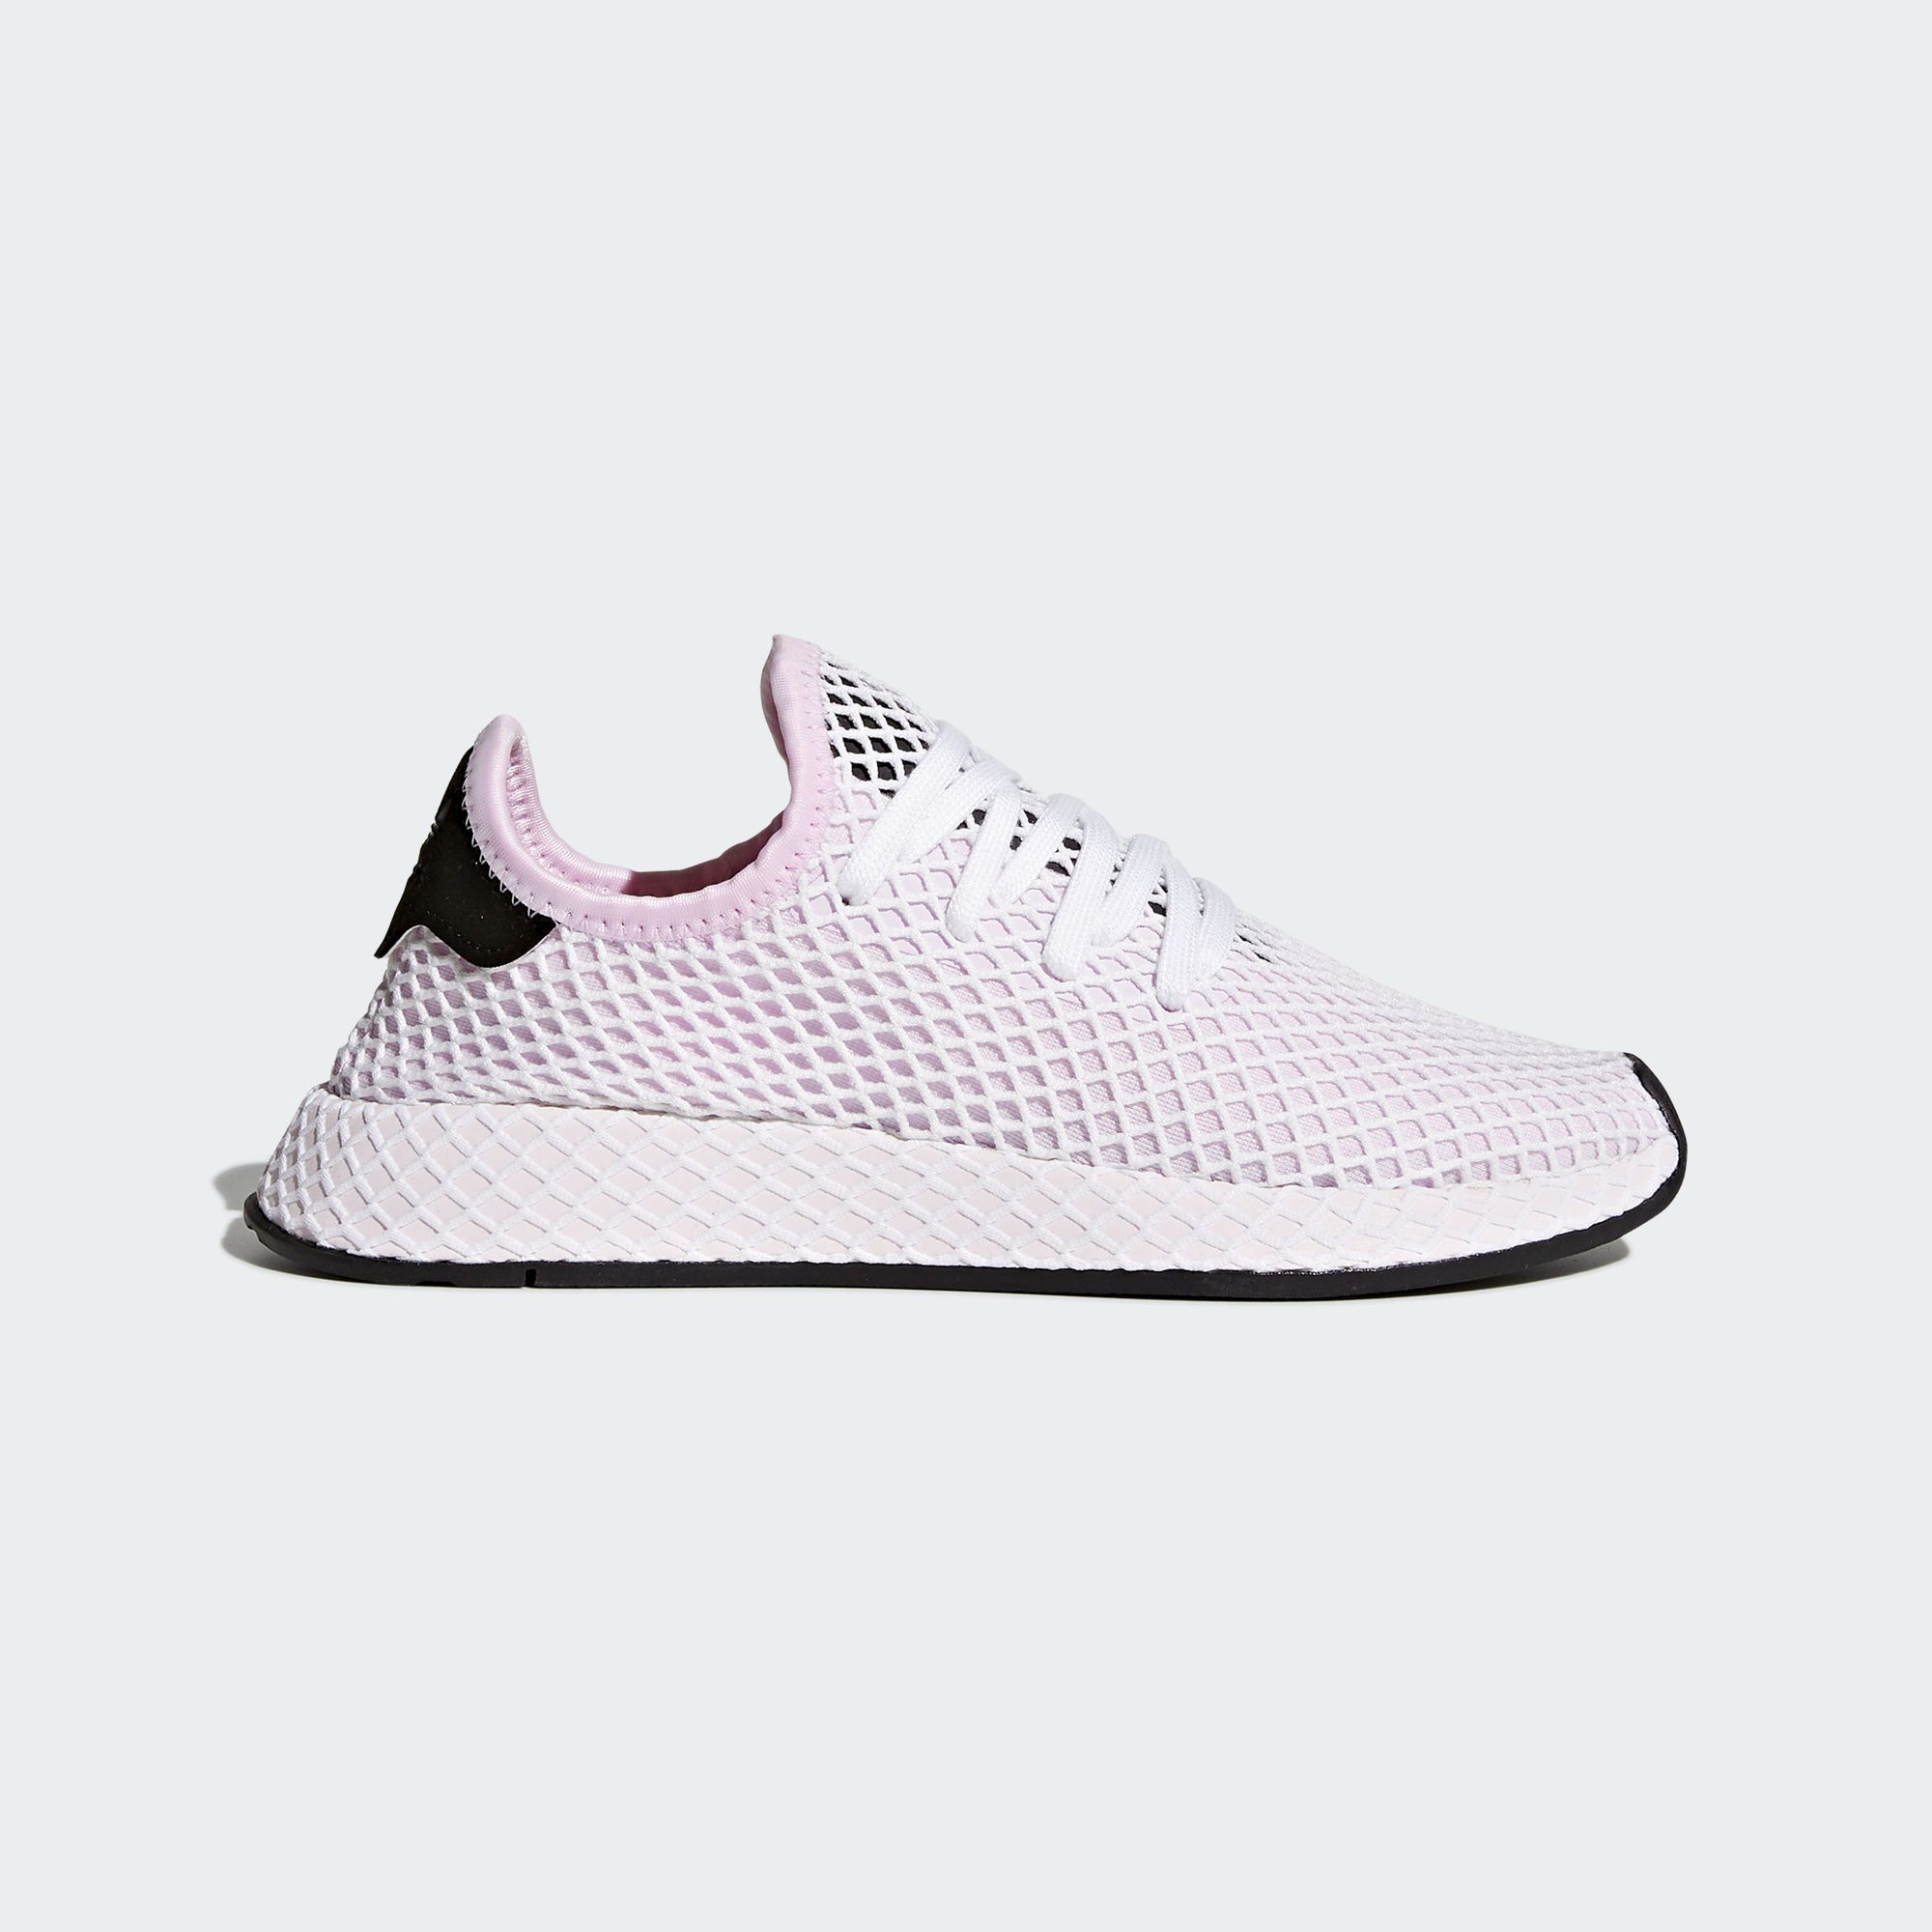 newest collection 19840 1038b Shop the Deerupt Runner Shoes - Pink at adidas.comus! See all the styles  and colors of Deerupt Runner Shoes - Pink at the official adidas online  shop.